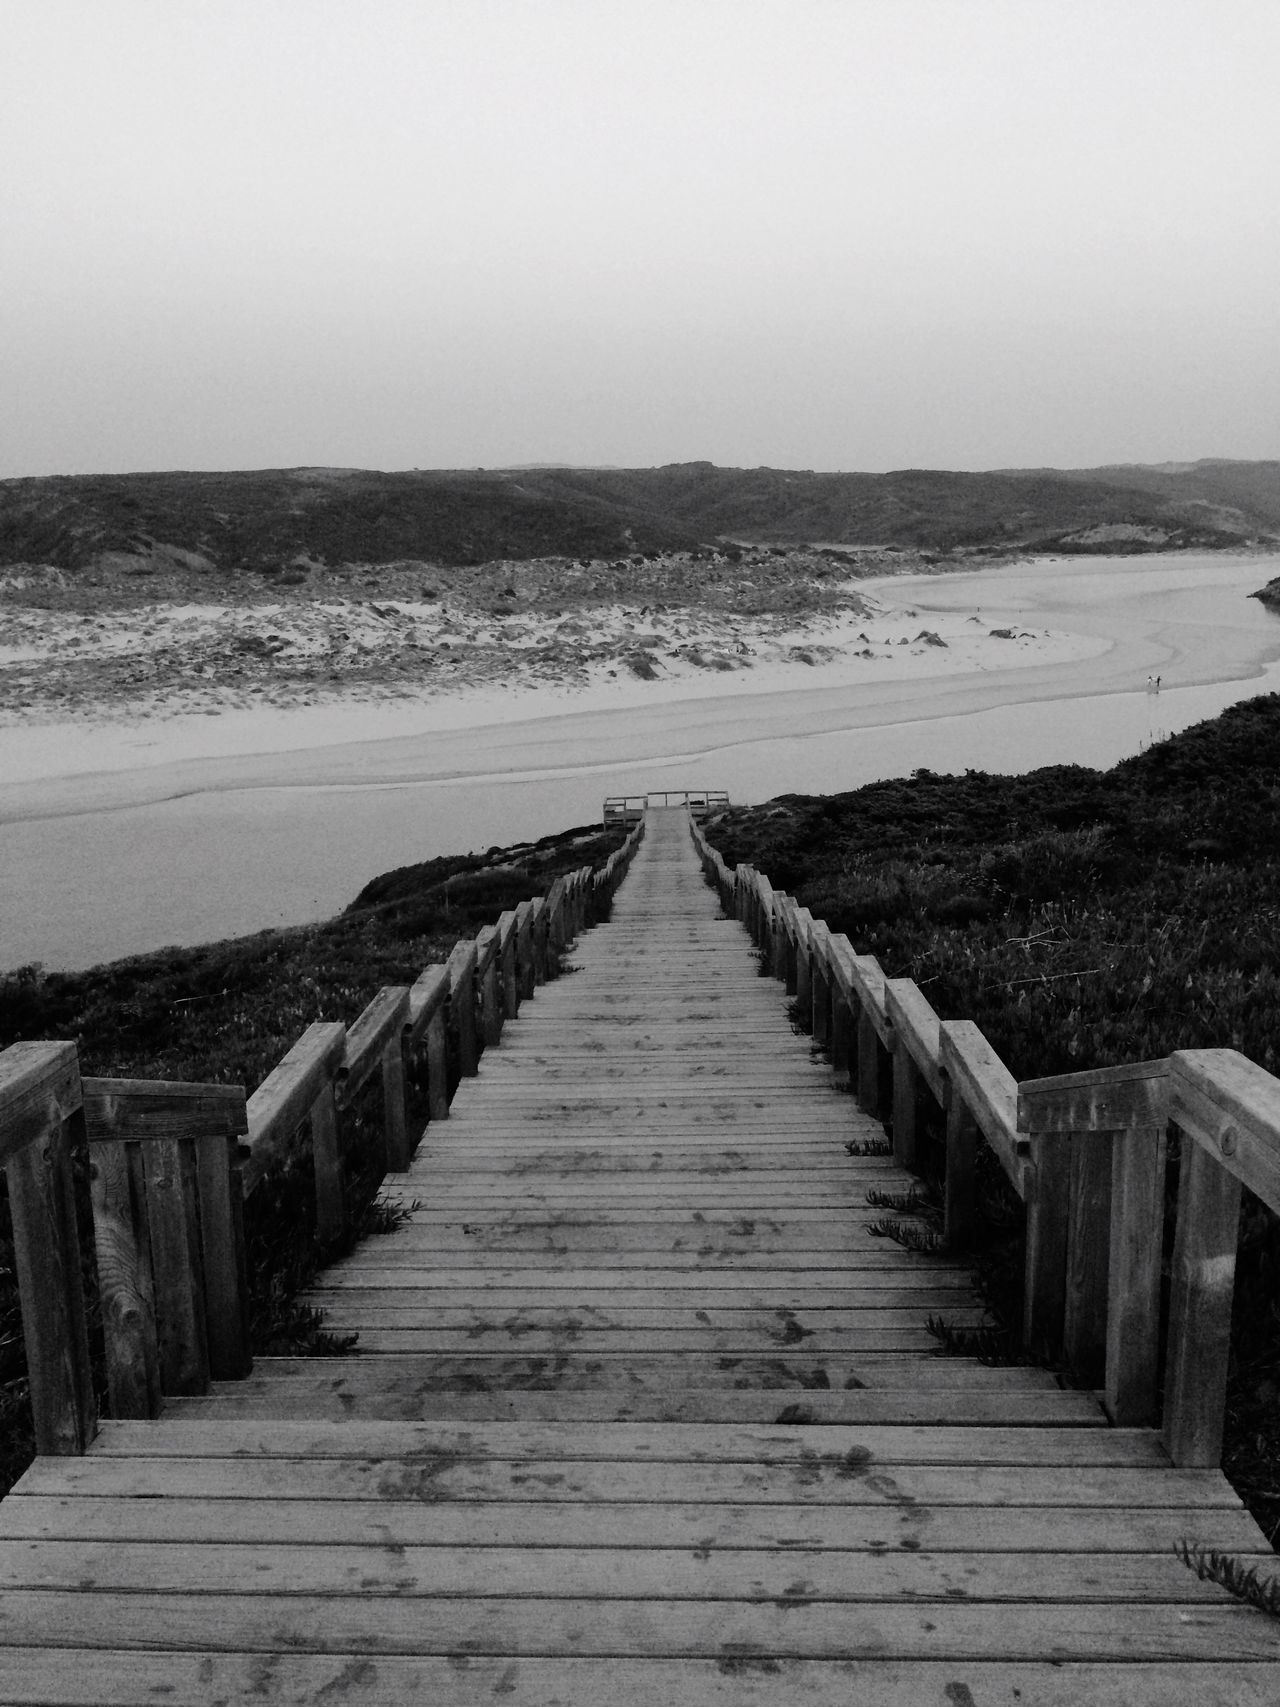 Monochrome Photography Nature Sea The Way Forward Tranquil Scene Clear Sky Beach Beauty In Nature Tranquility Scenics Outdoors Boardwalk Day Sky Sand Water No People Portugal Wood Paneling Aljezur